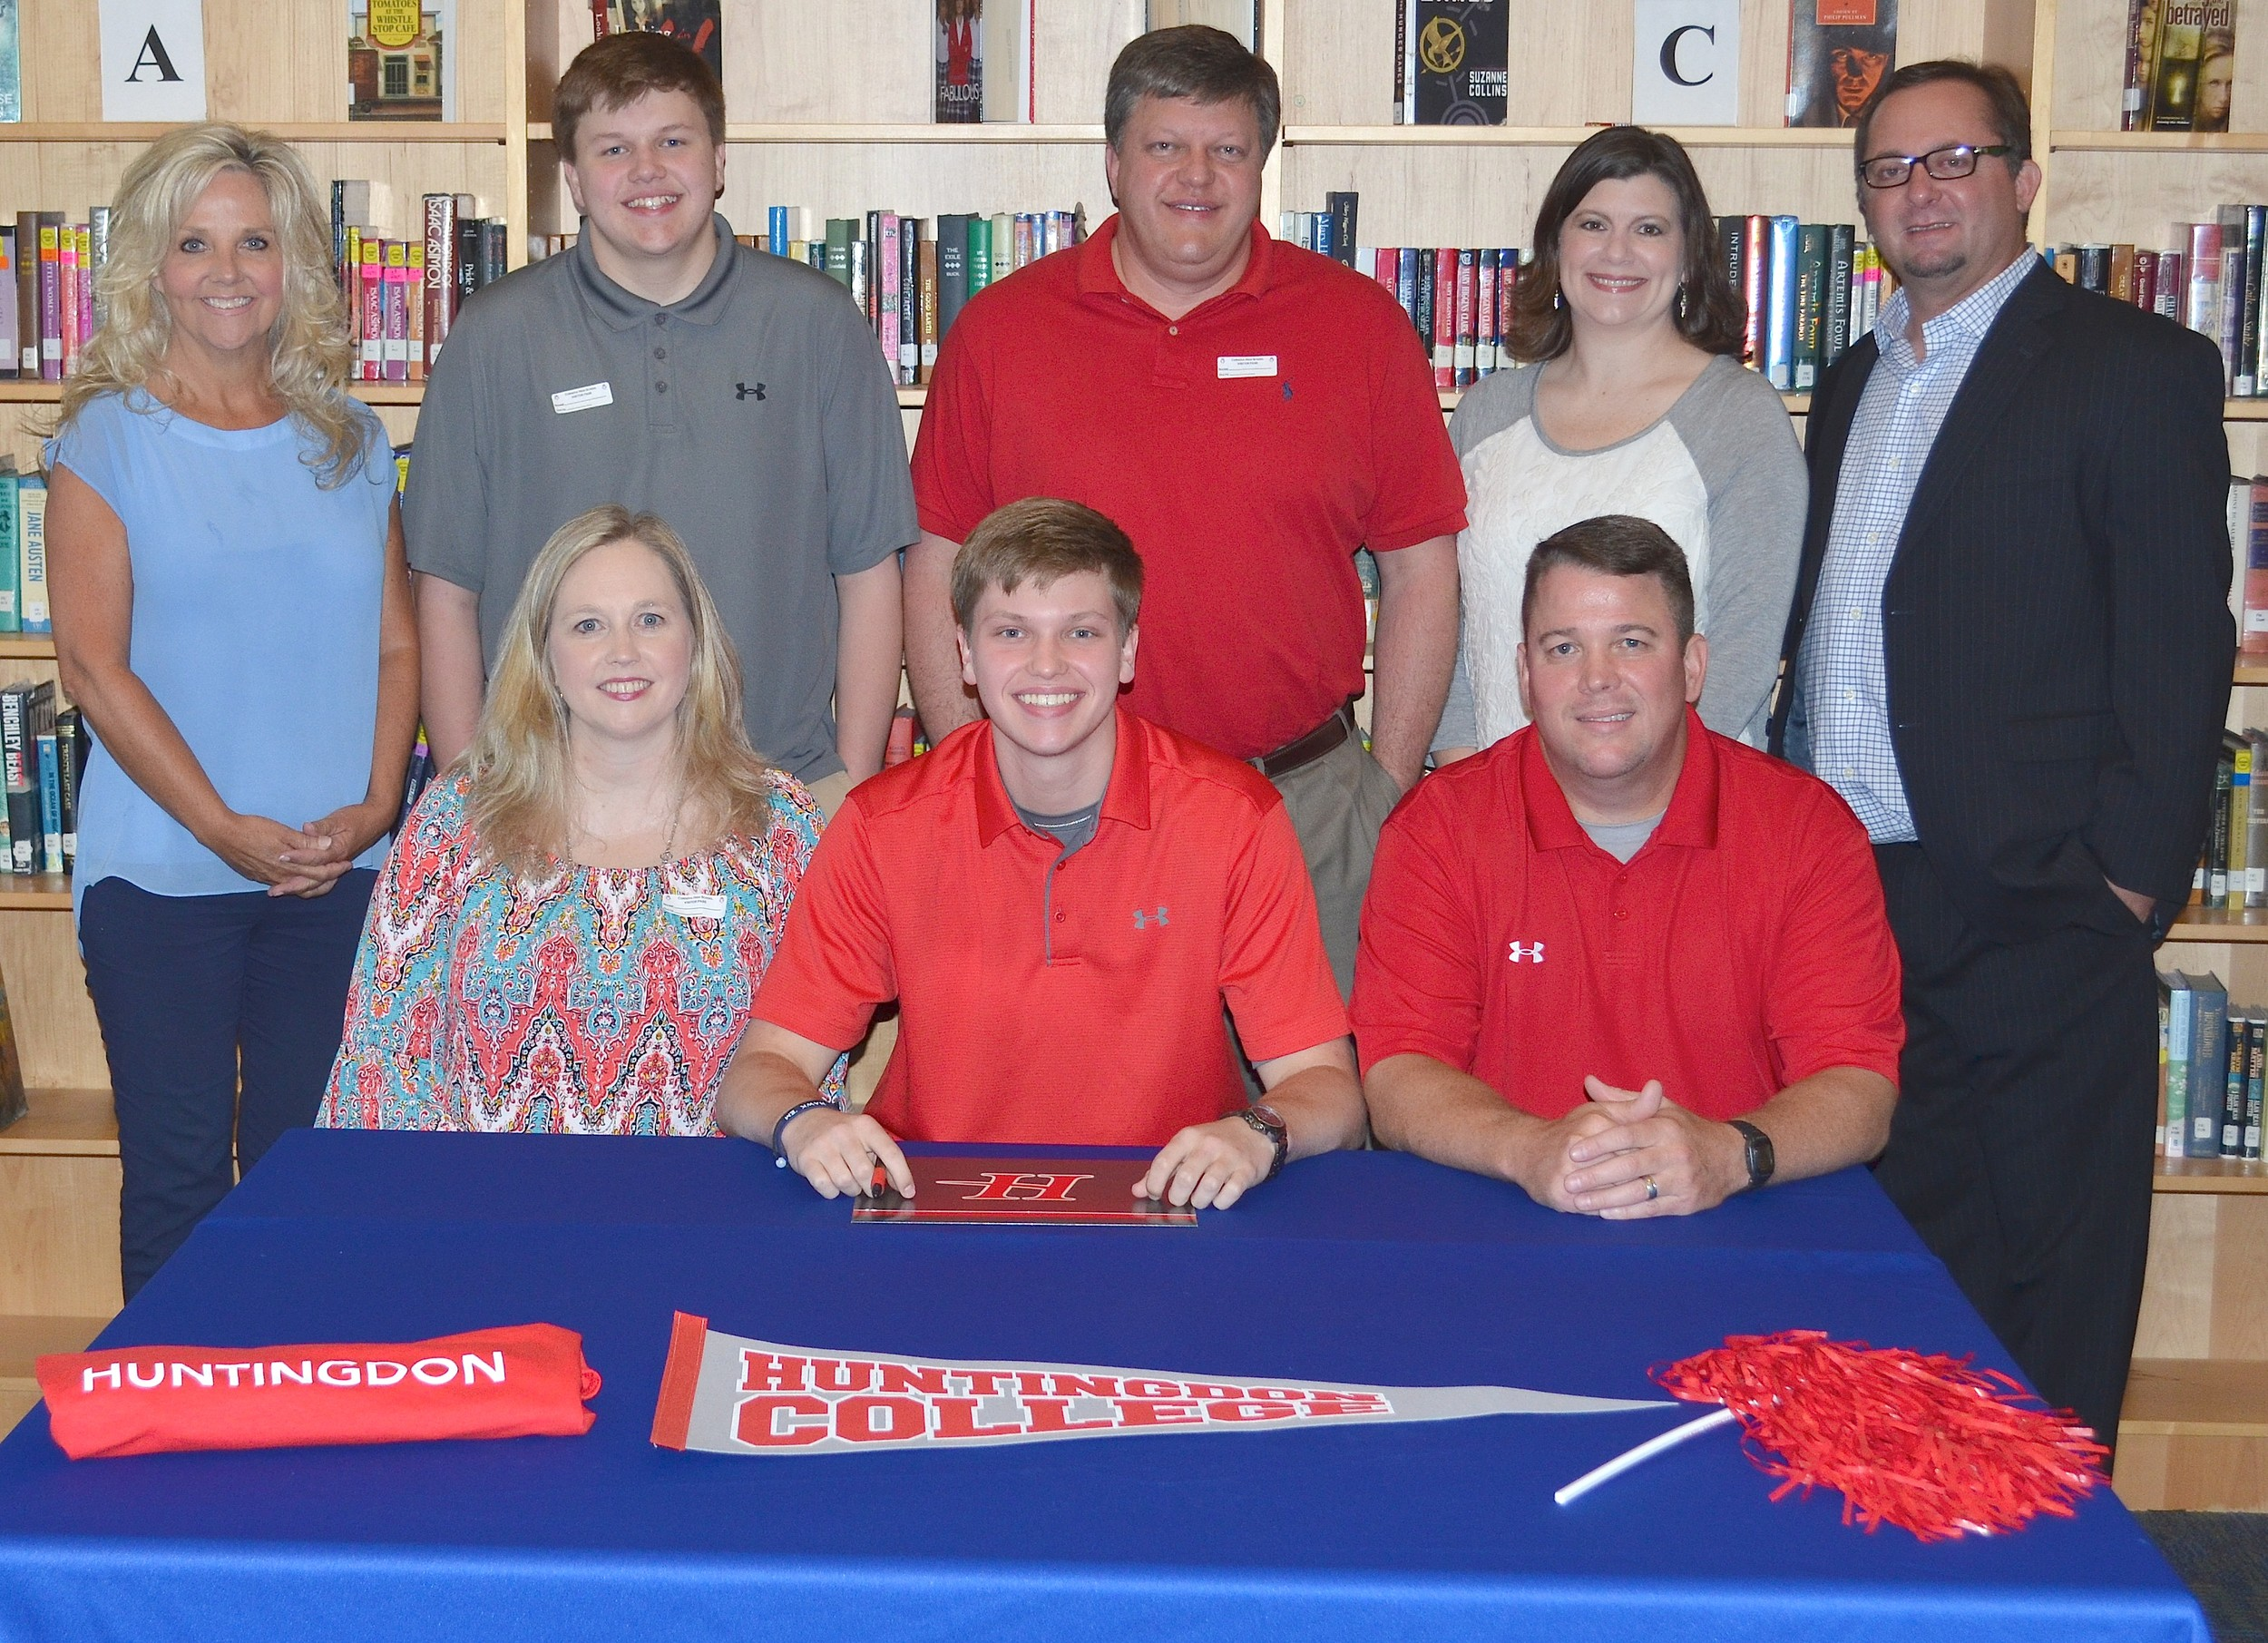 Cordova's Graham Martin signed with Huntingdon College last week. He will play basketball at the NAIA school located in Montgomery. Present at the signing were, seated from left, Donna Fleming (mother), Graham Martin and Ken Fleming (step father), back row, Cordova High School Principal Kathy Vintson, Drew Martin (brother), Terrell Martin (father), Stephanie Martin (step mother) and Cordova basketball coach Heath Burns.